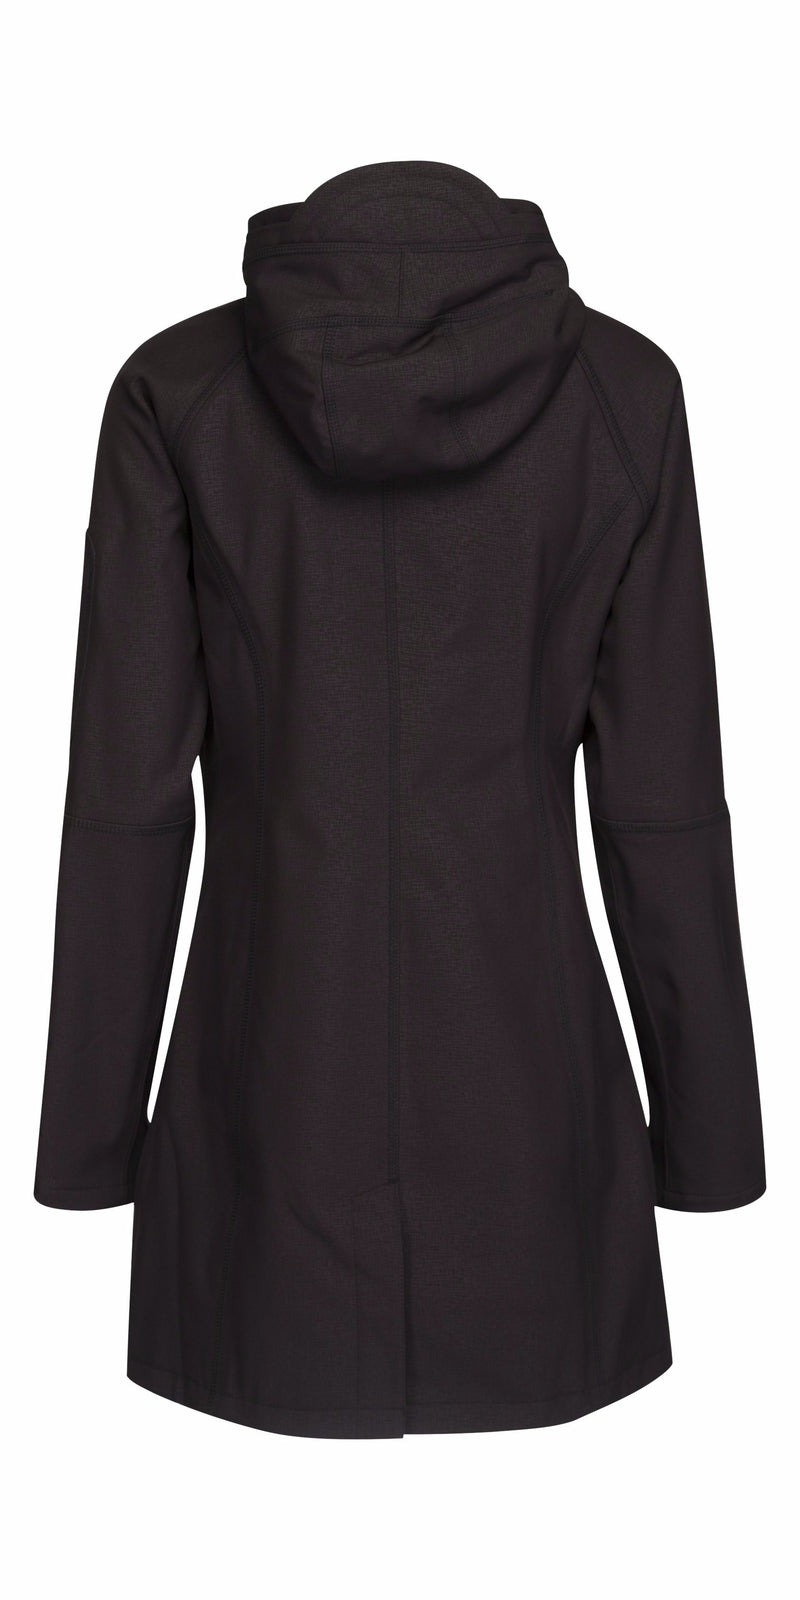 ILSE JACOBSEN RAIN 37 BLACK